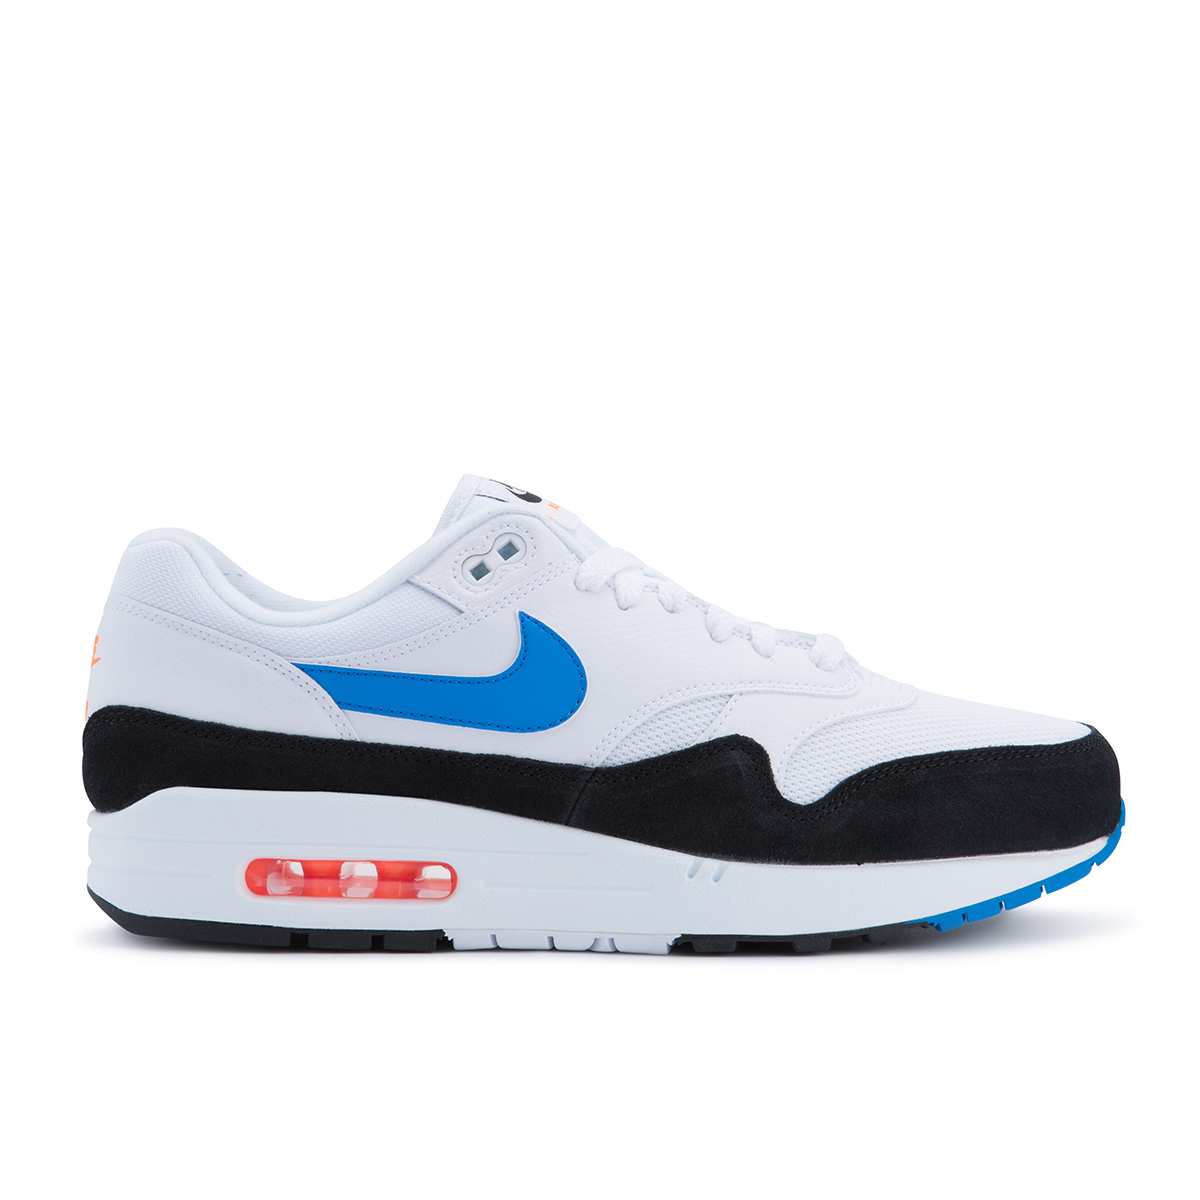 many styles shoes for cheap hot sale online Nike Air Max 1 - Men's Shoes